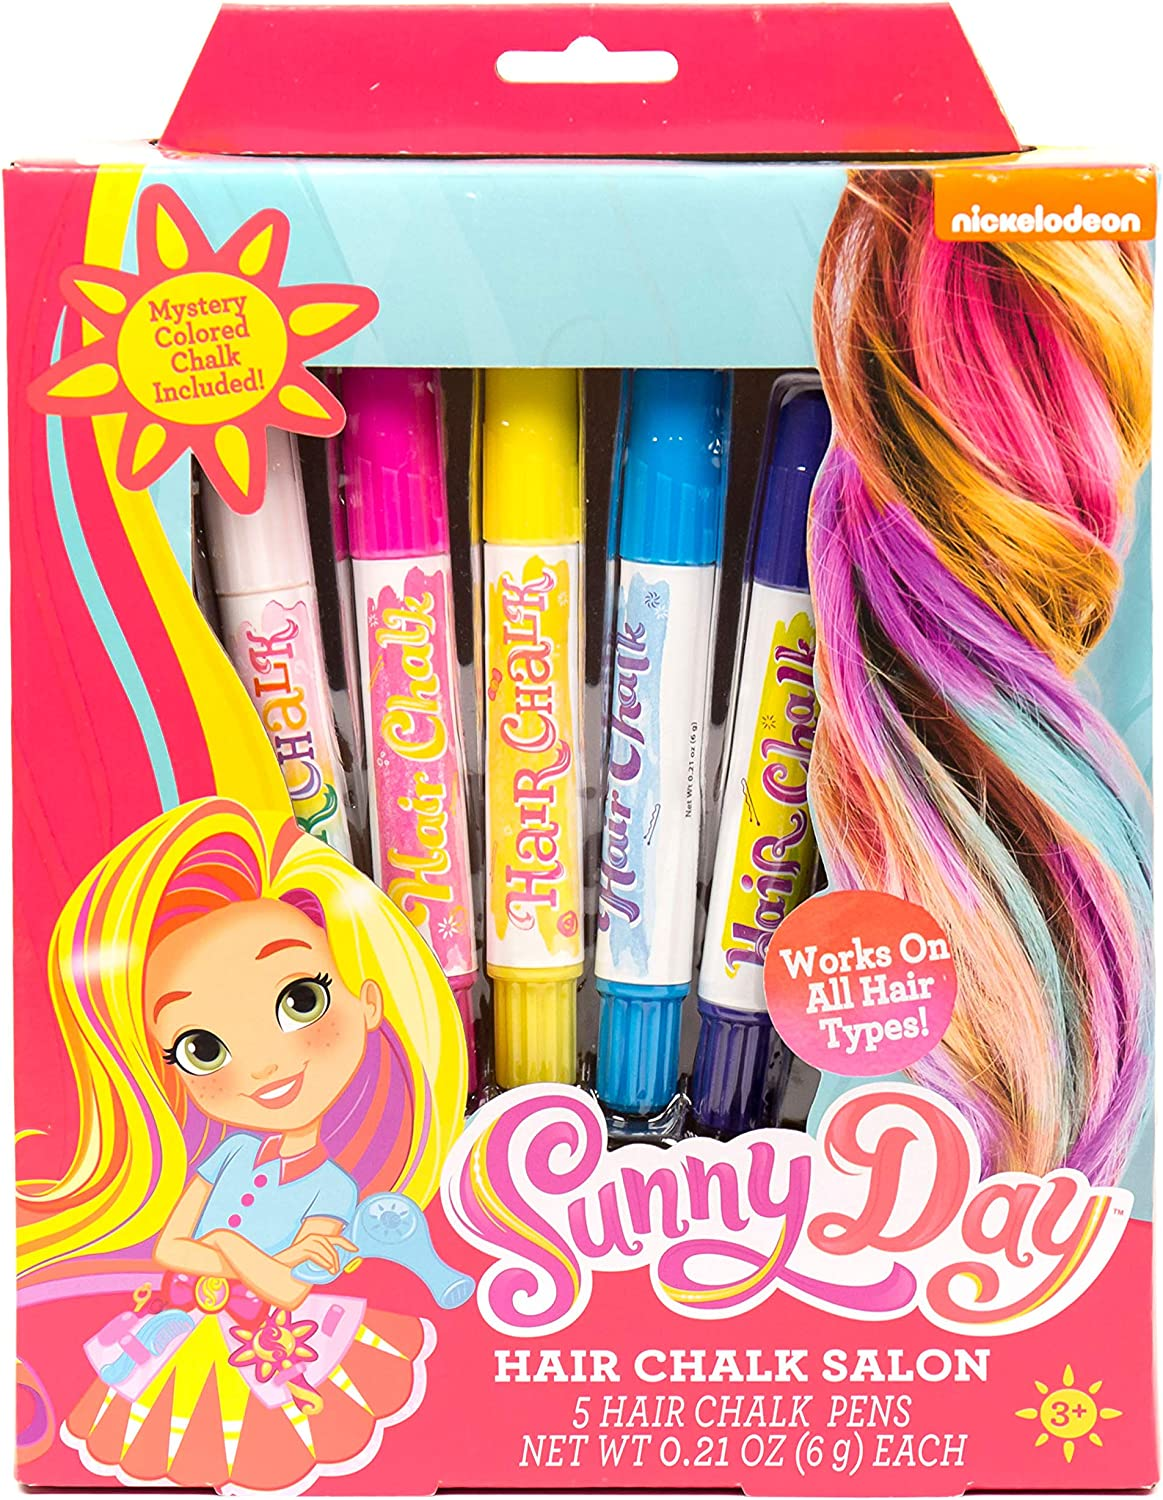 Sunny Day Hair Chalk Salon by Horizon Group USA, 5 Colorful Hairchalk Pens